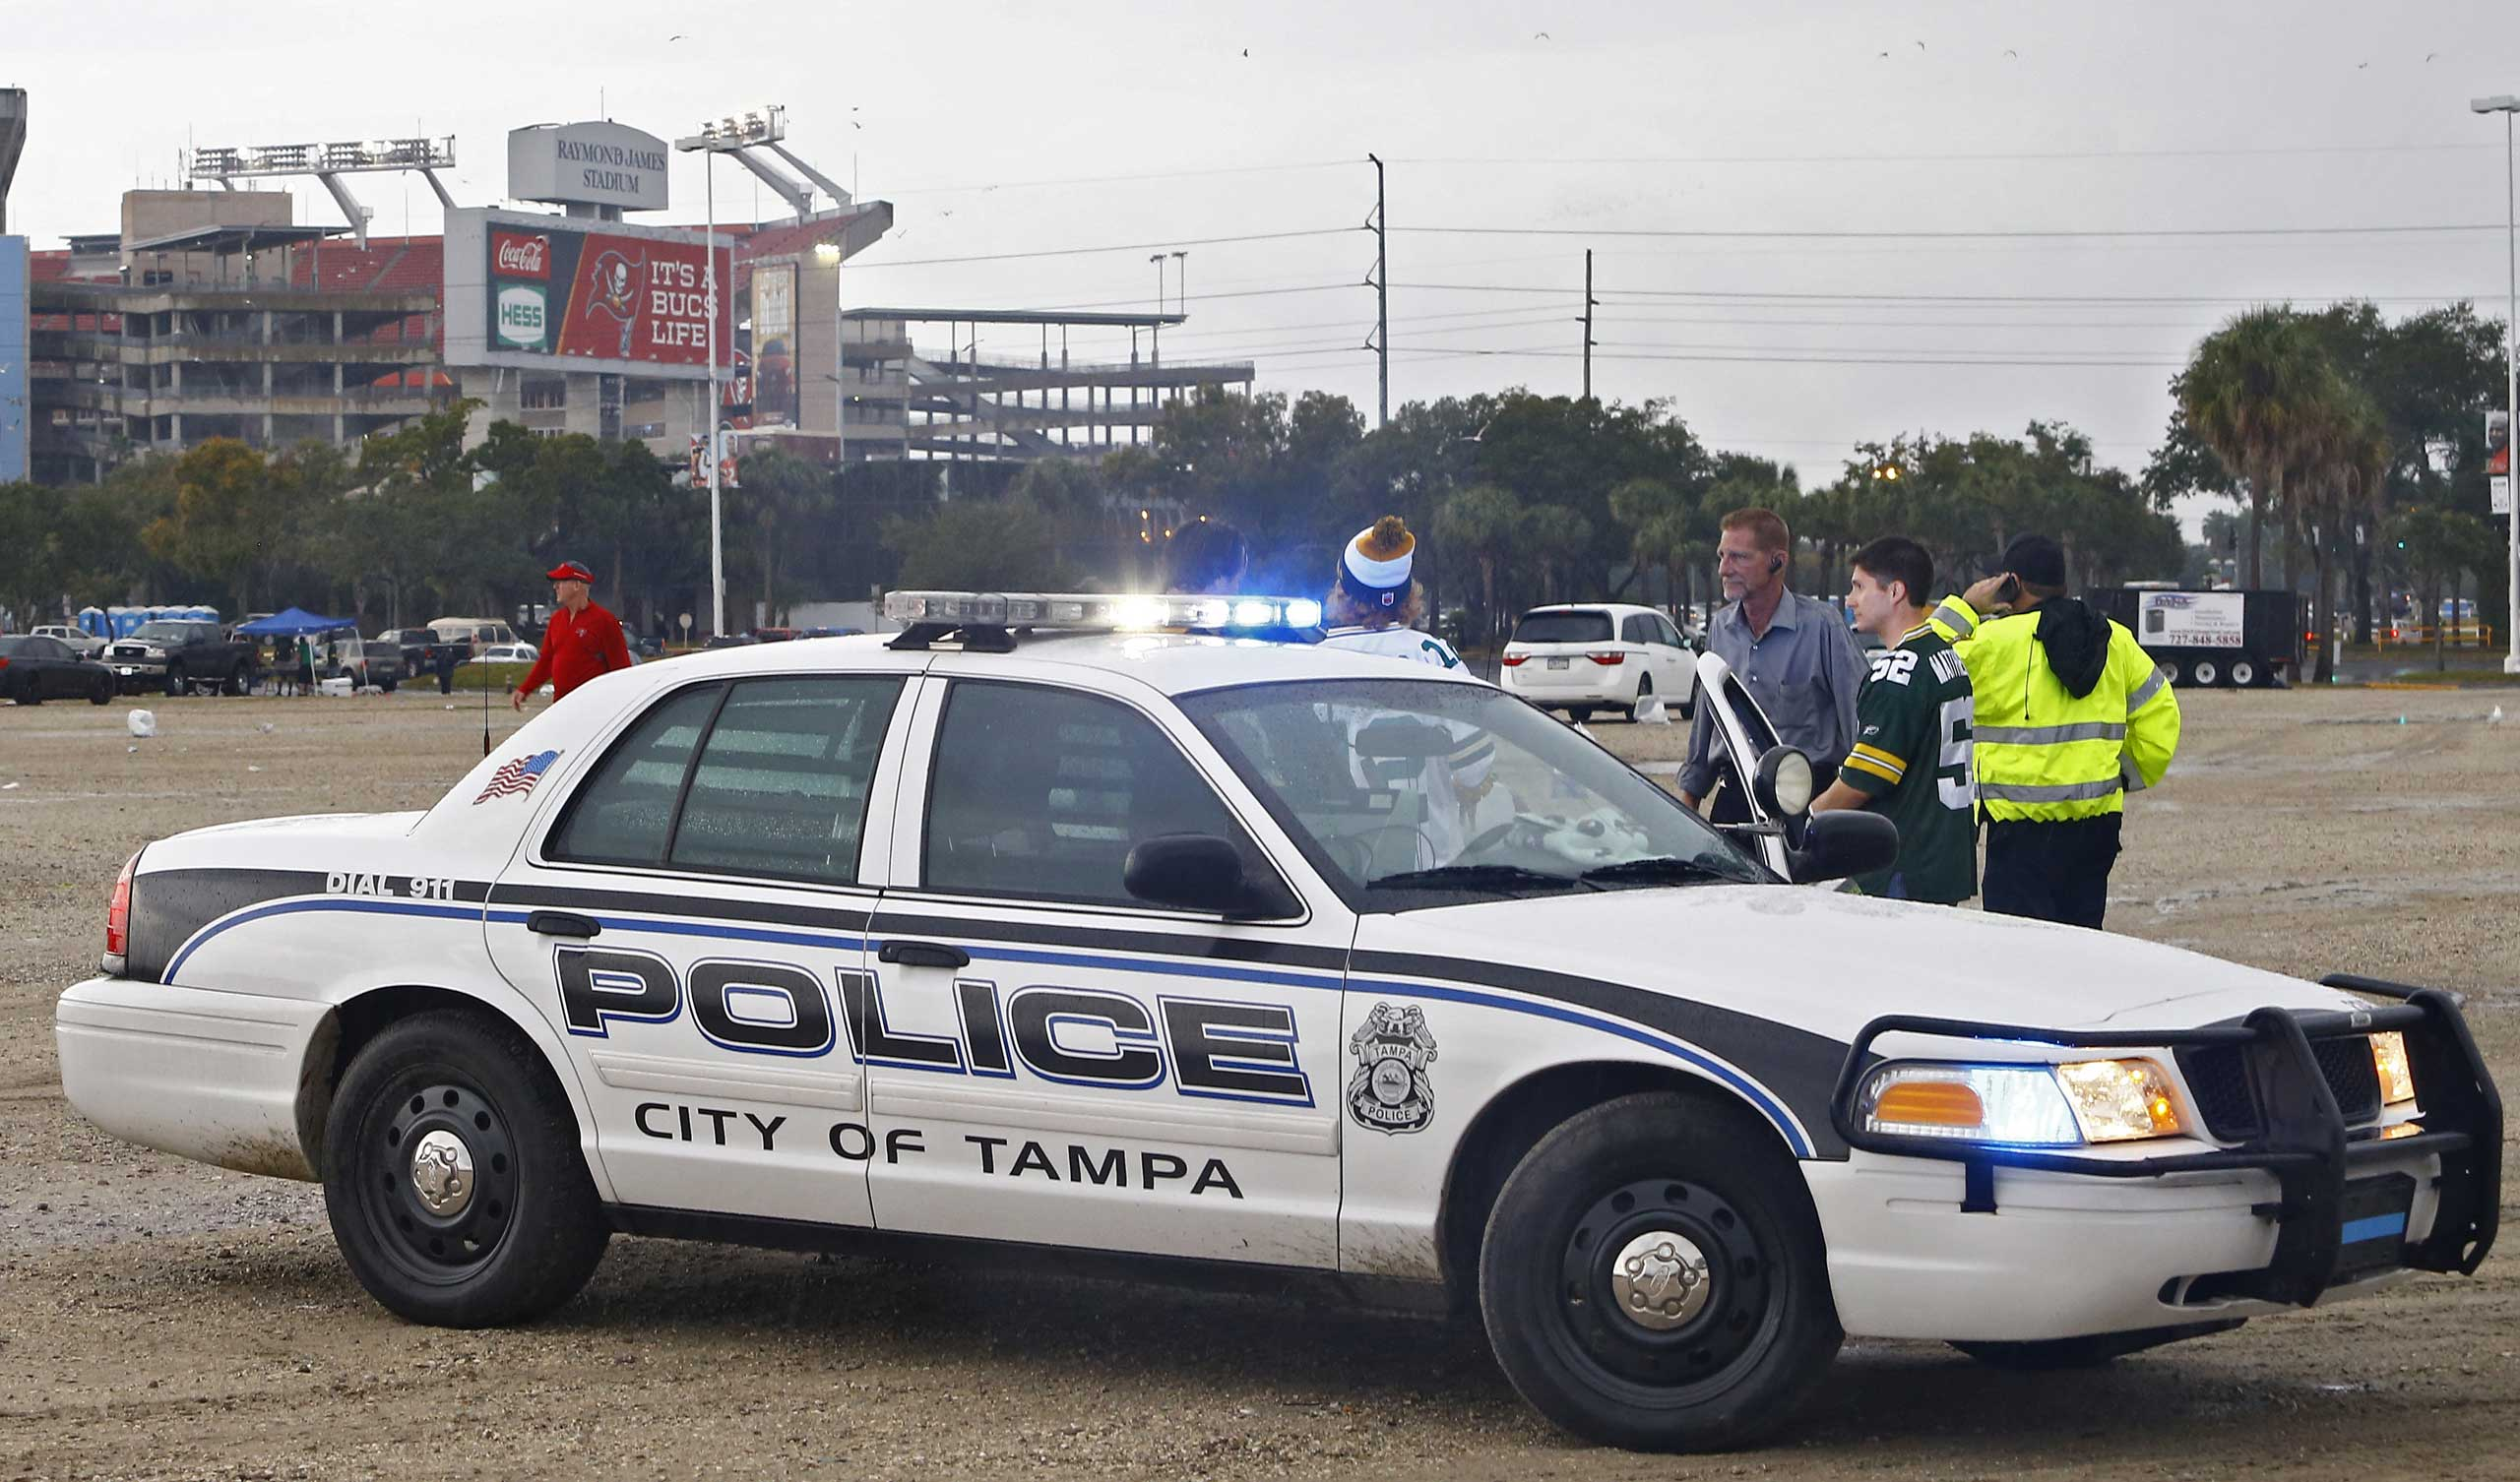 Tampa Police Officers talk to spectators after football fans were reportedly taken to the hospital with injuries after a lightning strike near the Raymond James Stadium, Dec. 21, 2014, in Tampa, Fla.